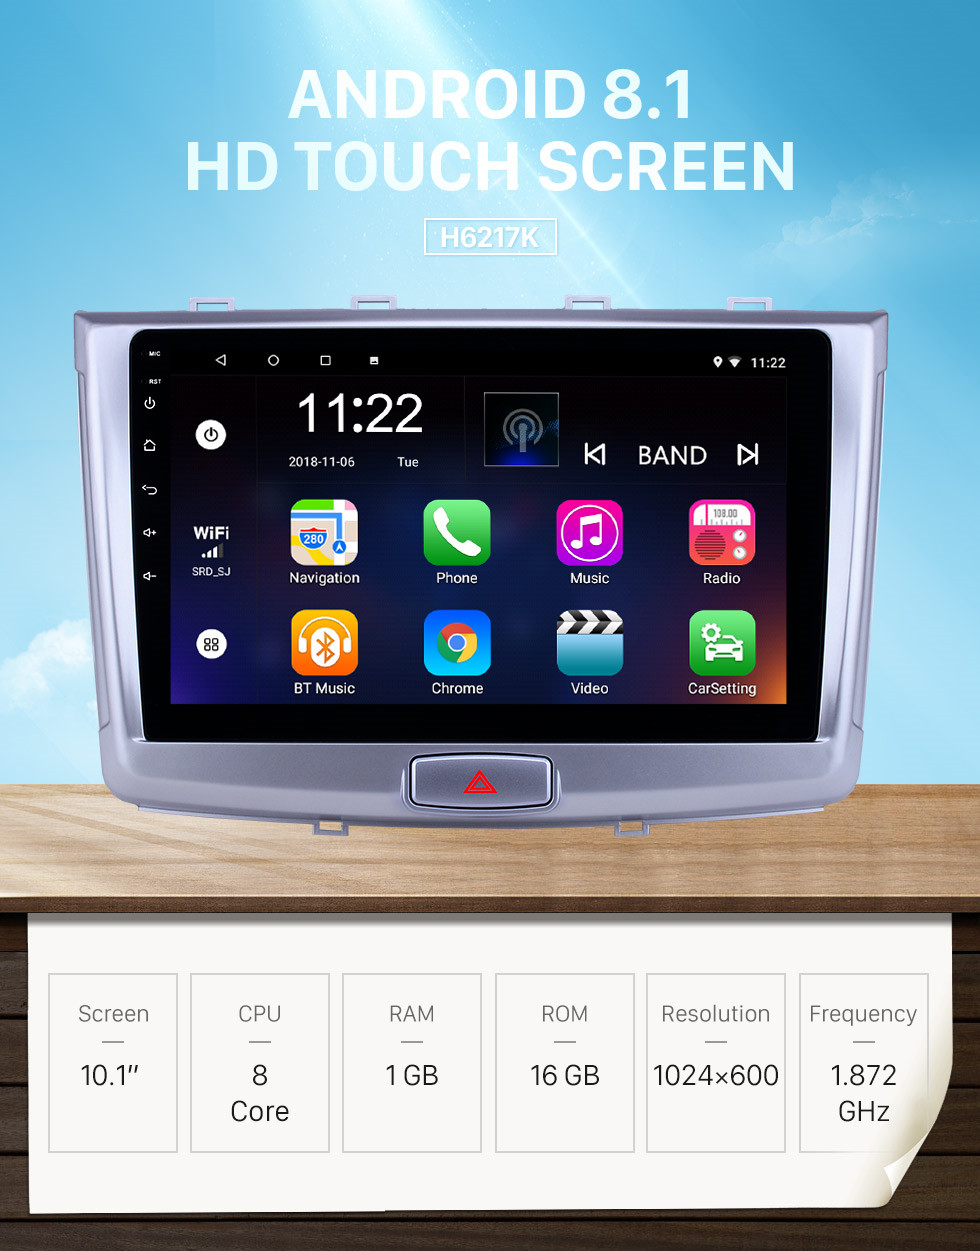 Seicane 10.1 inch Android 8.1 HD Touchscreen GPS Navigation Radio for 2017 Great Wall Haval H6 with Bluetooth USB WIFI AUX support Carplay SWC Mirror Link